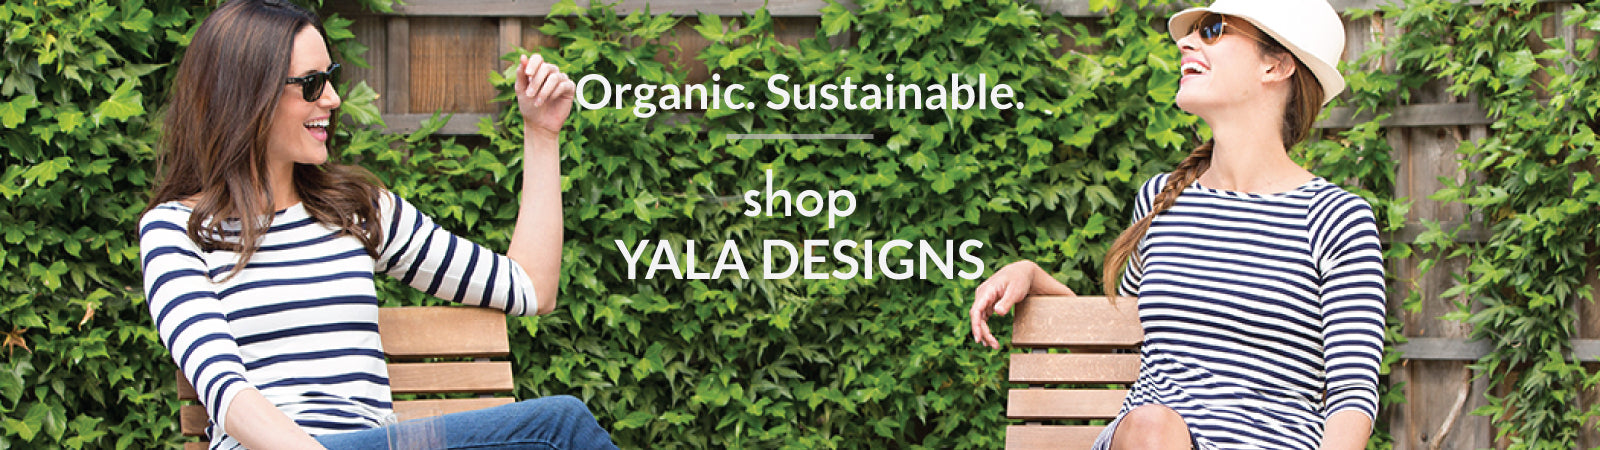 Shop women's sustainable bamboo and cotton clothes from Yala Designs.